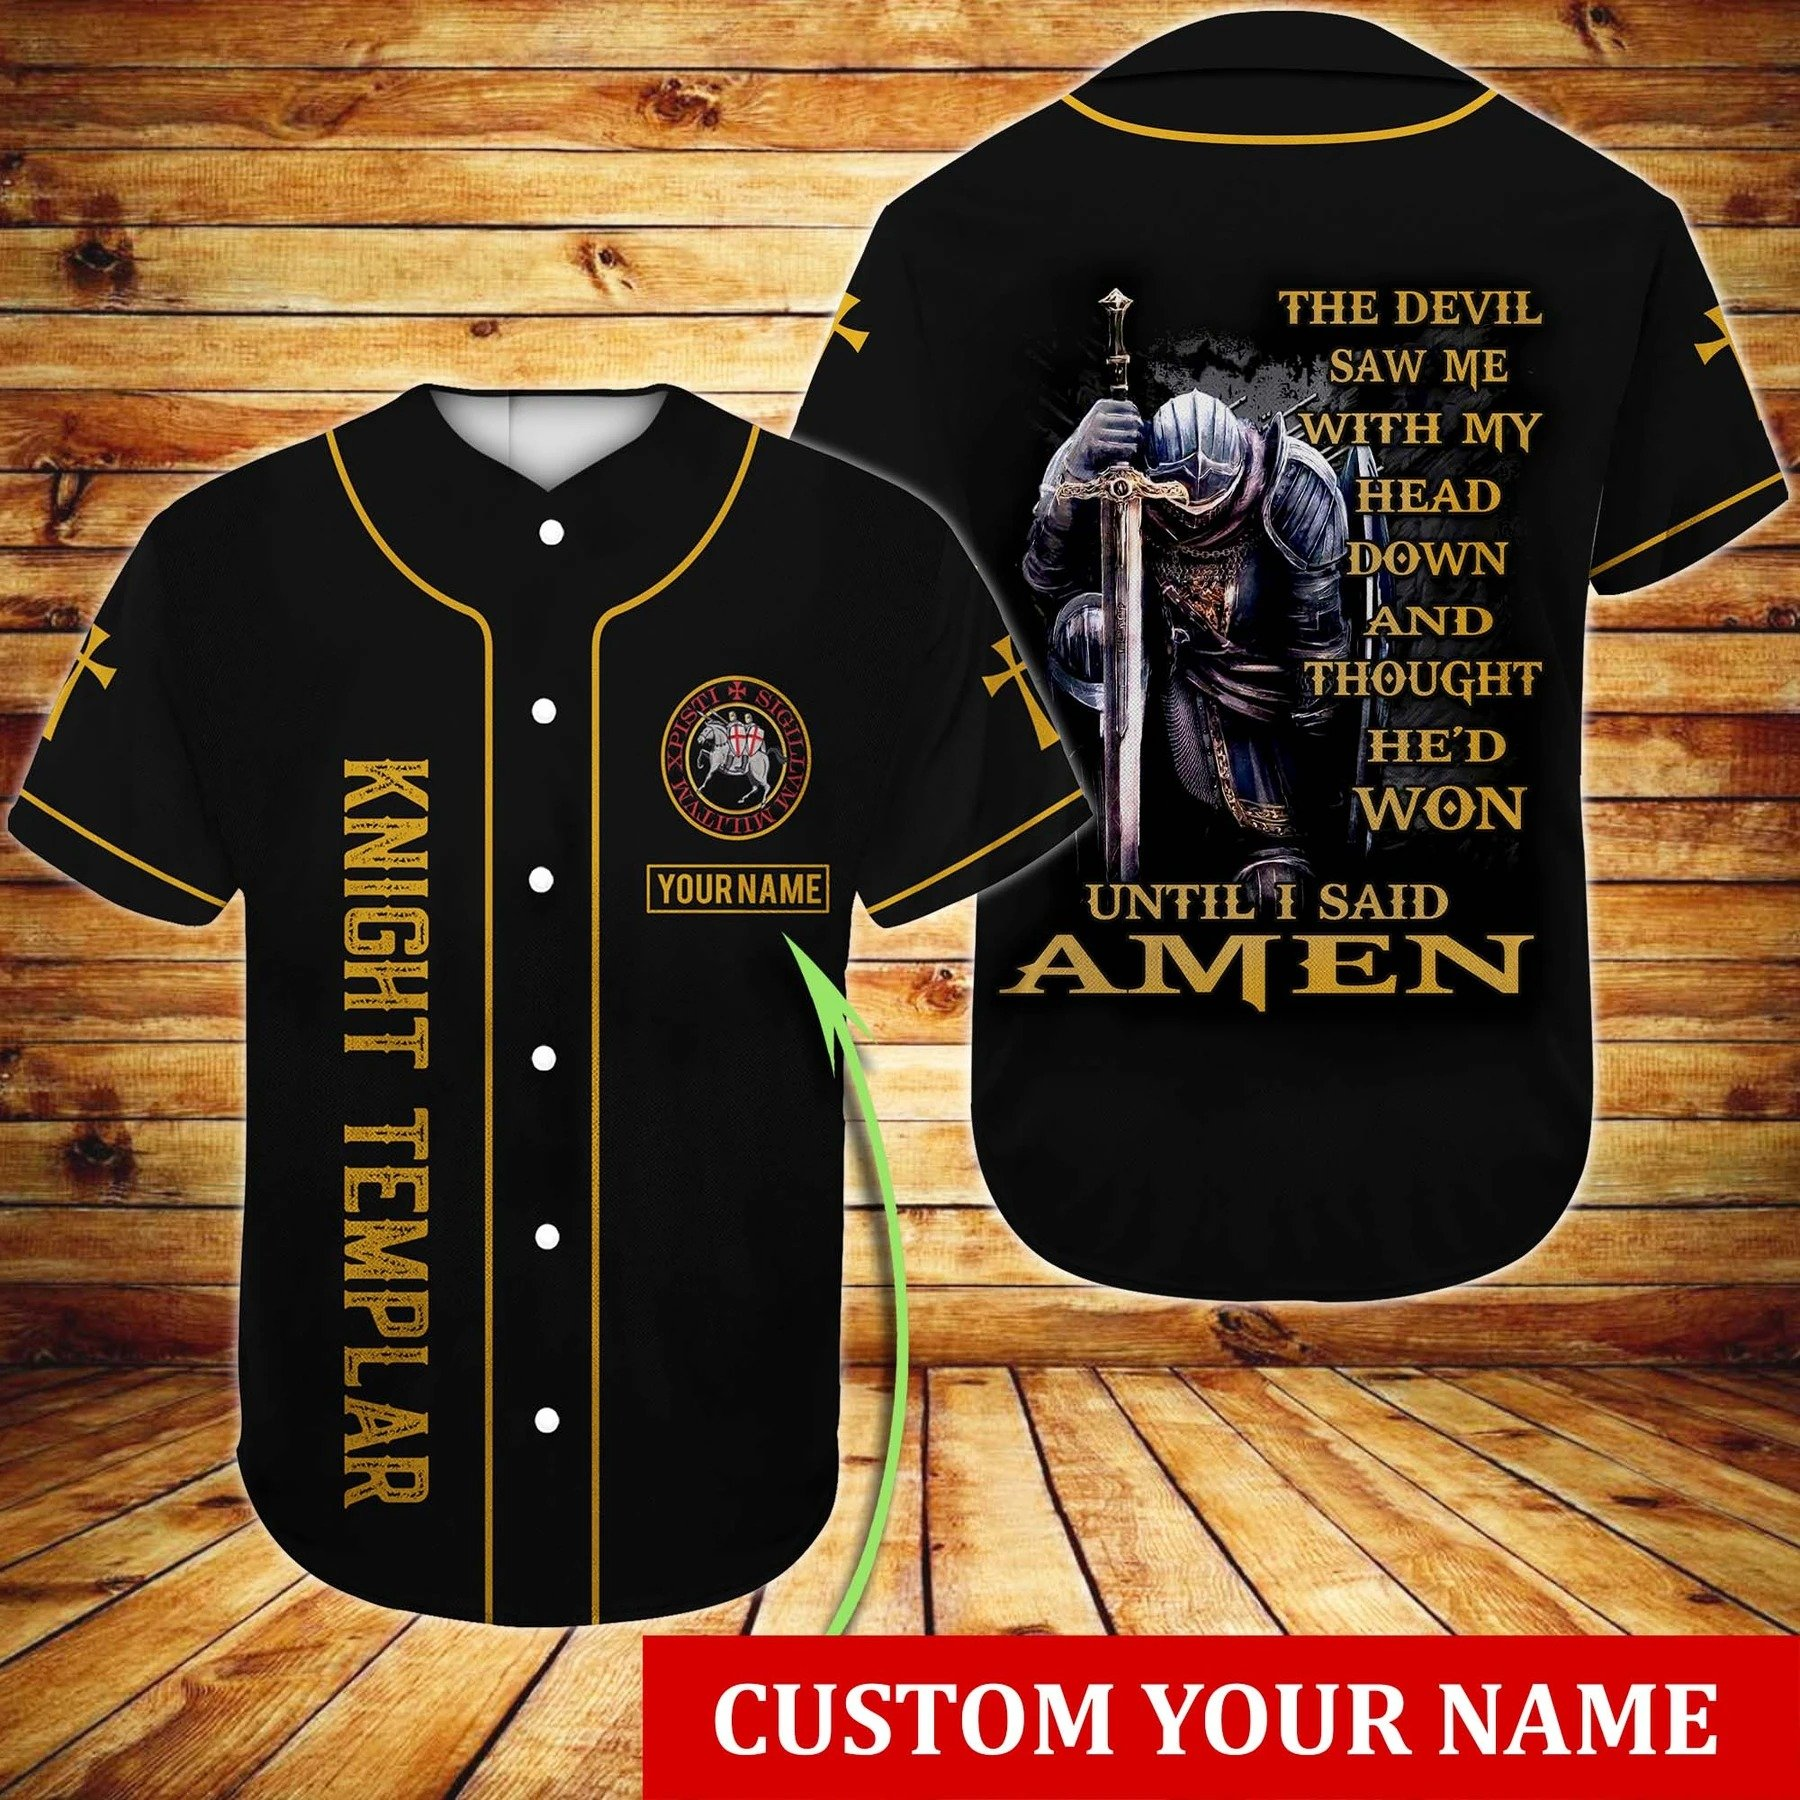 Personalized Christian Knight Templar The Devil Saw Me With My Head Down Baseball Jersey